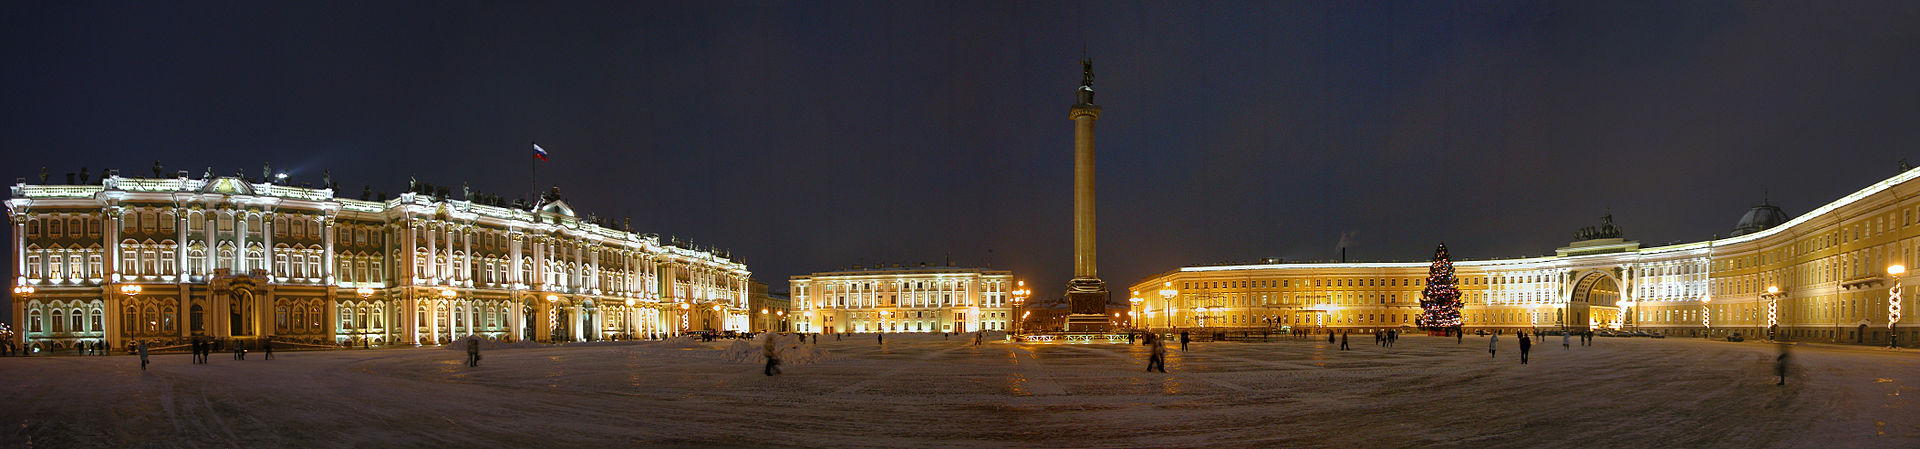 Image depicting the Palace Square in St. Petersburg.